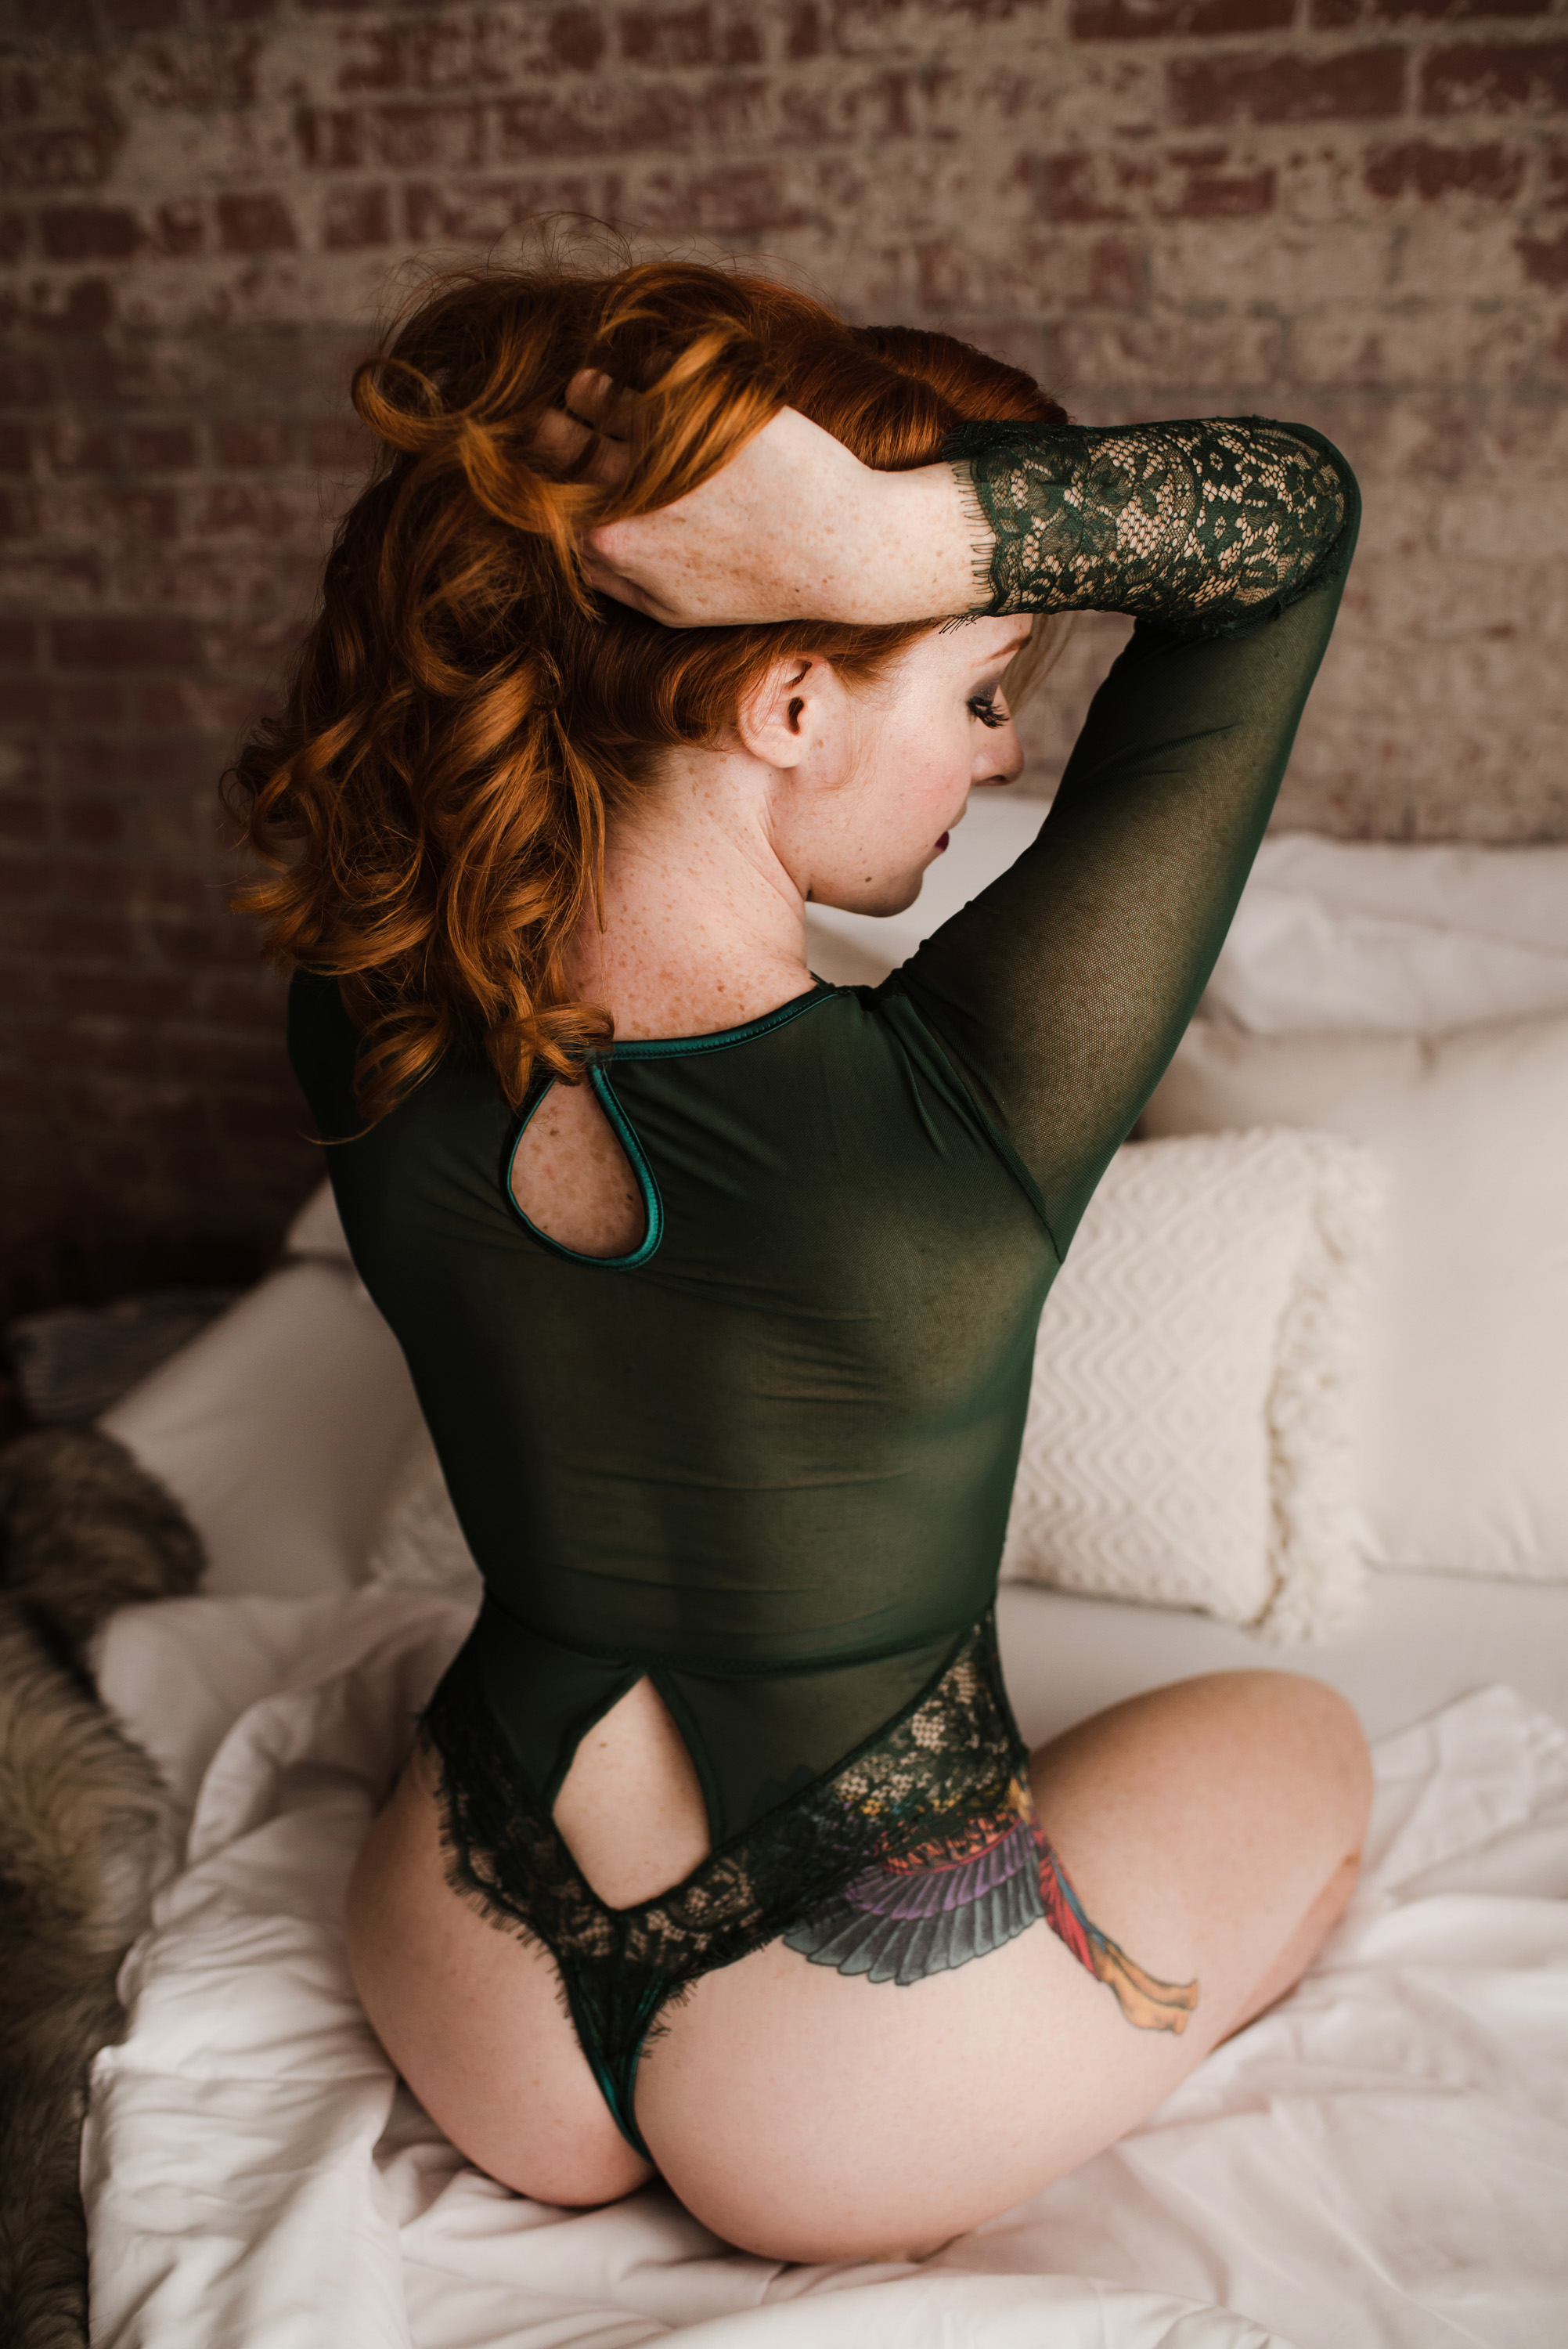 Amazon lingerie inspiration and recommendations for your boudoir session by Virago Boudoir